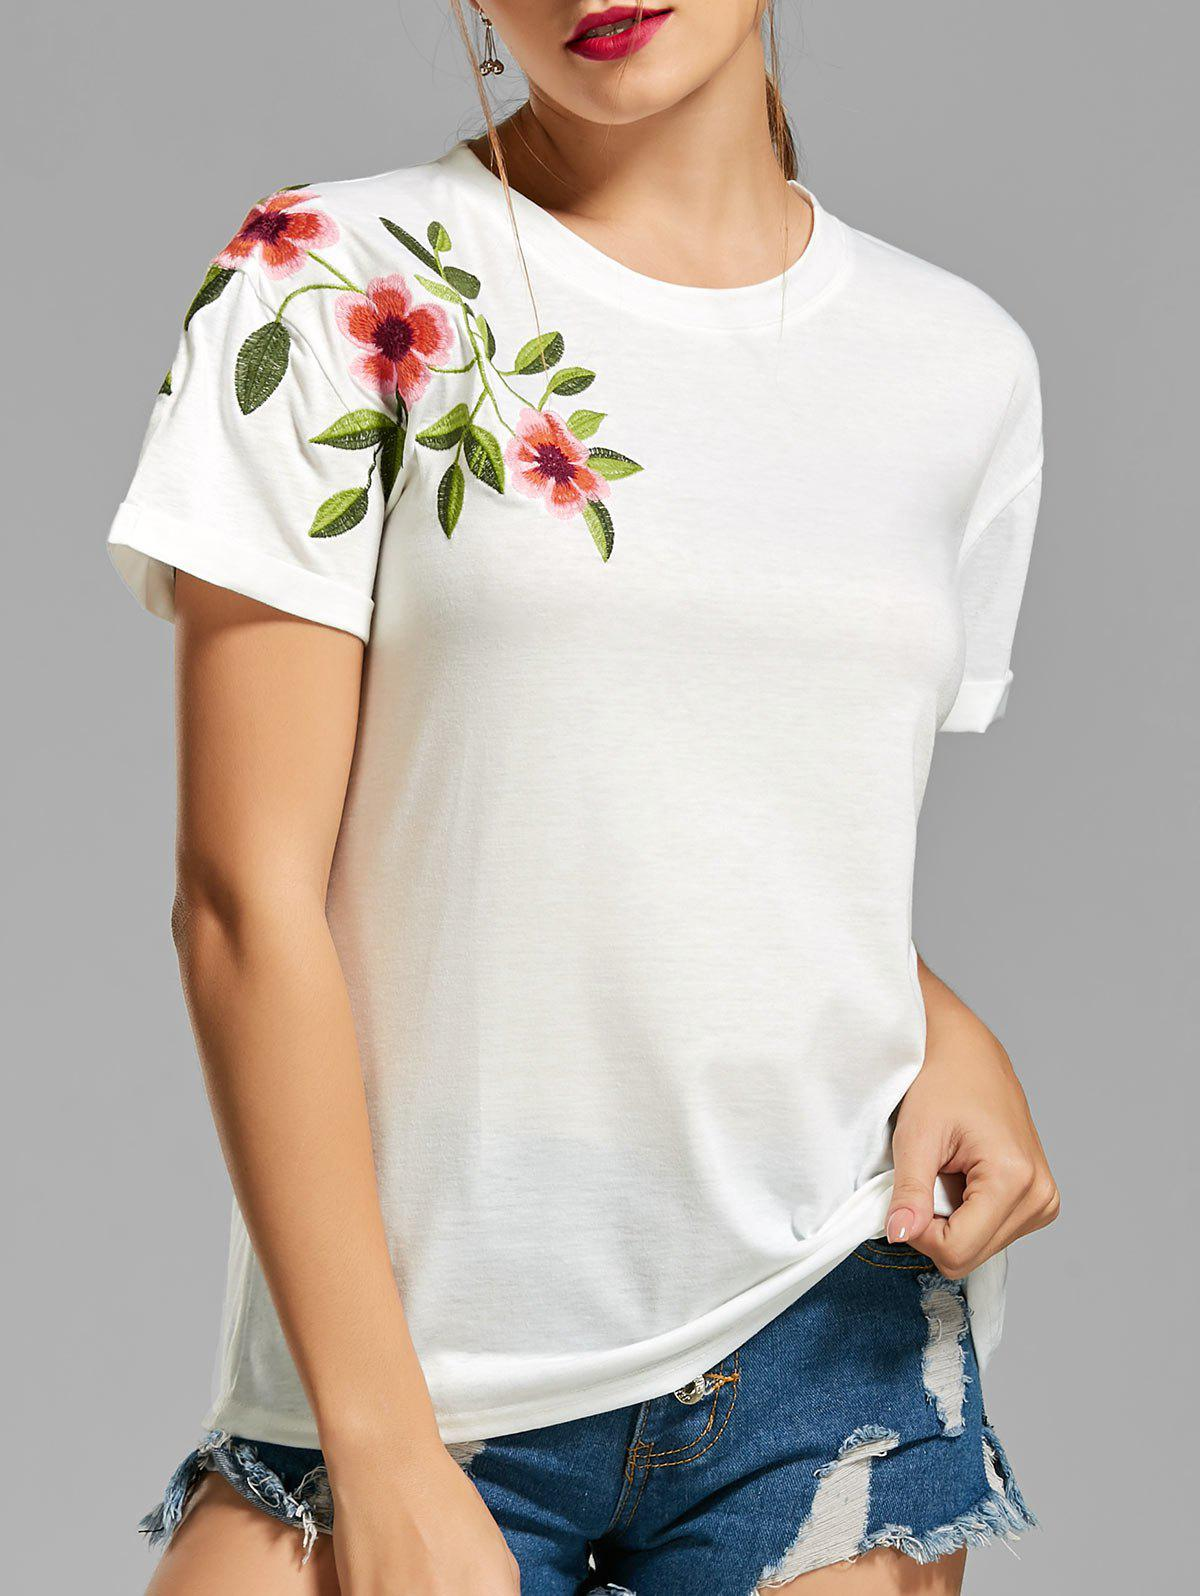 Store Flower Embroidered T-shirt